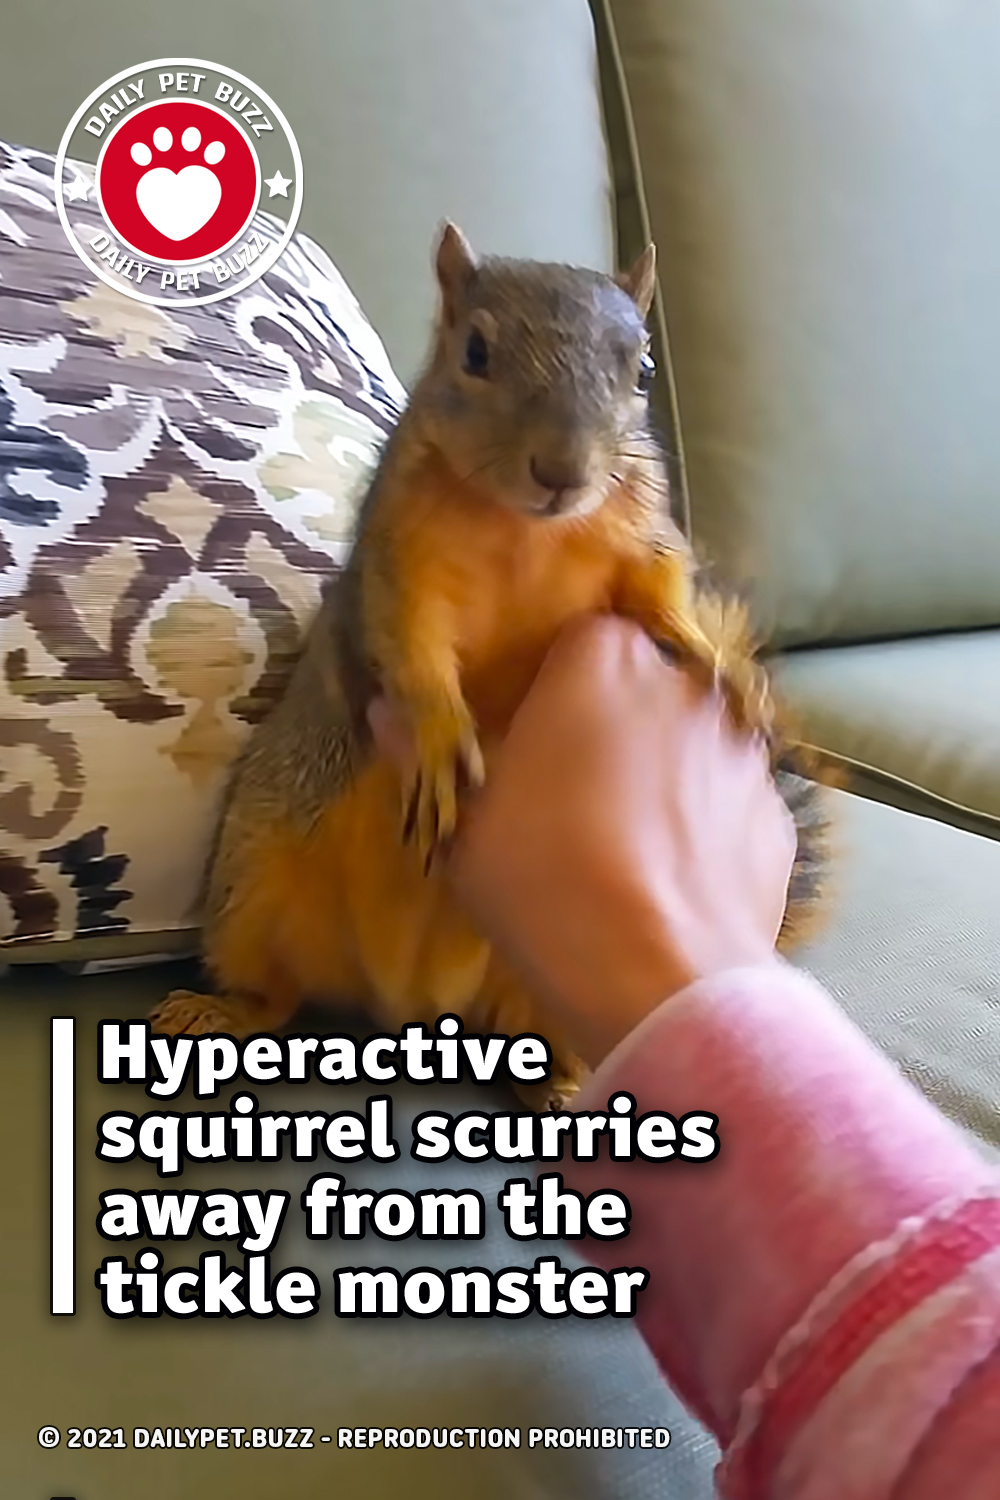 Hyperactive squirrel scurries away from the tickle monster